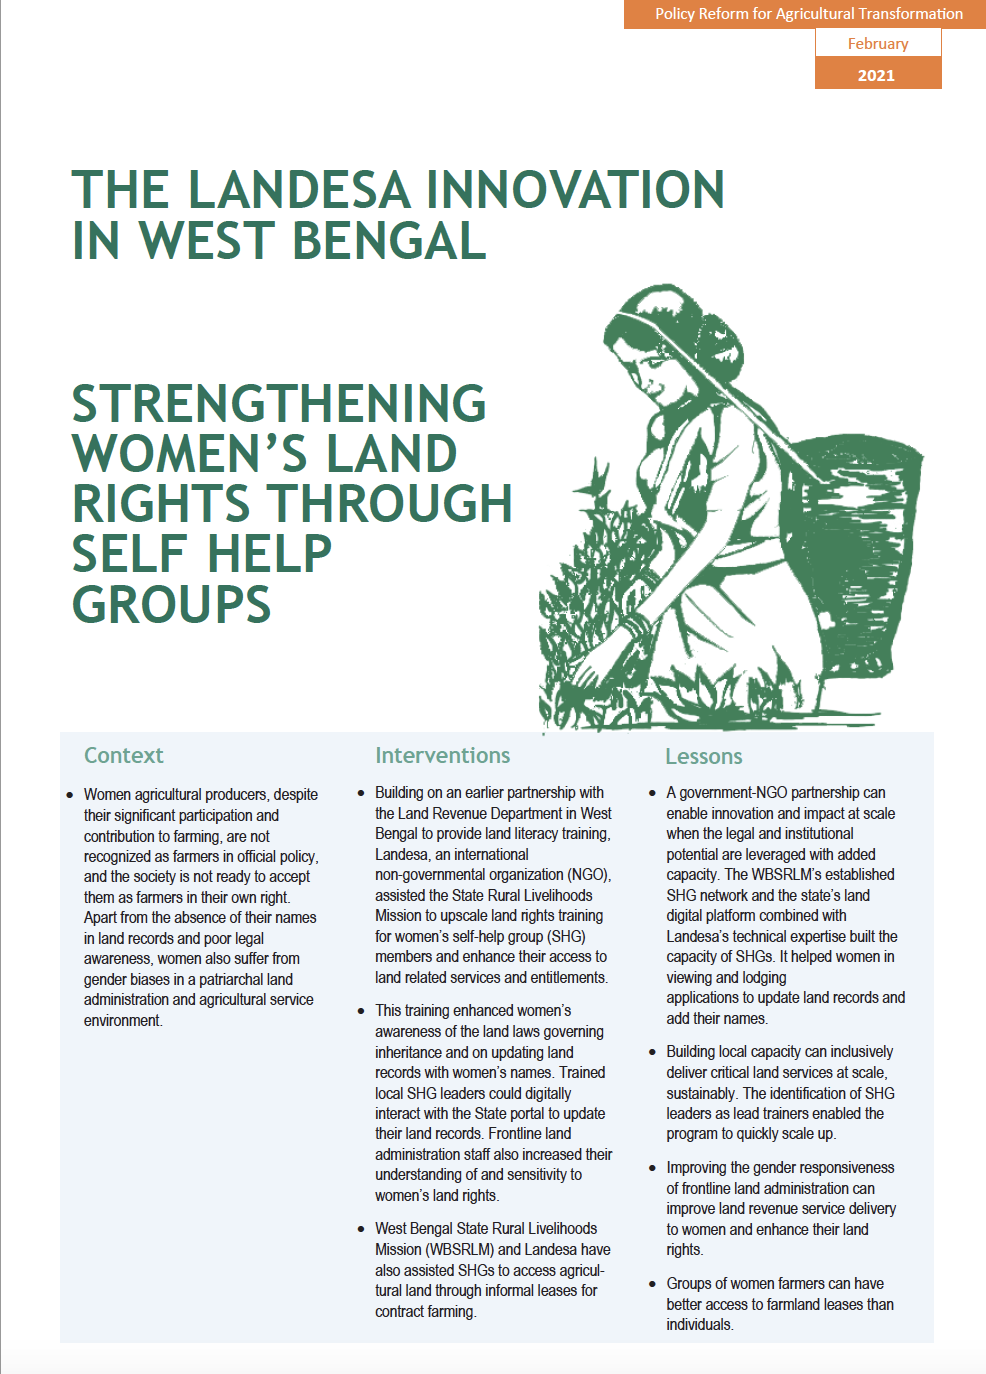 Strengthening Women's Land Rights Through Self Help Groups